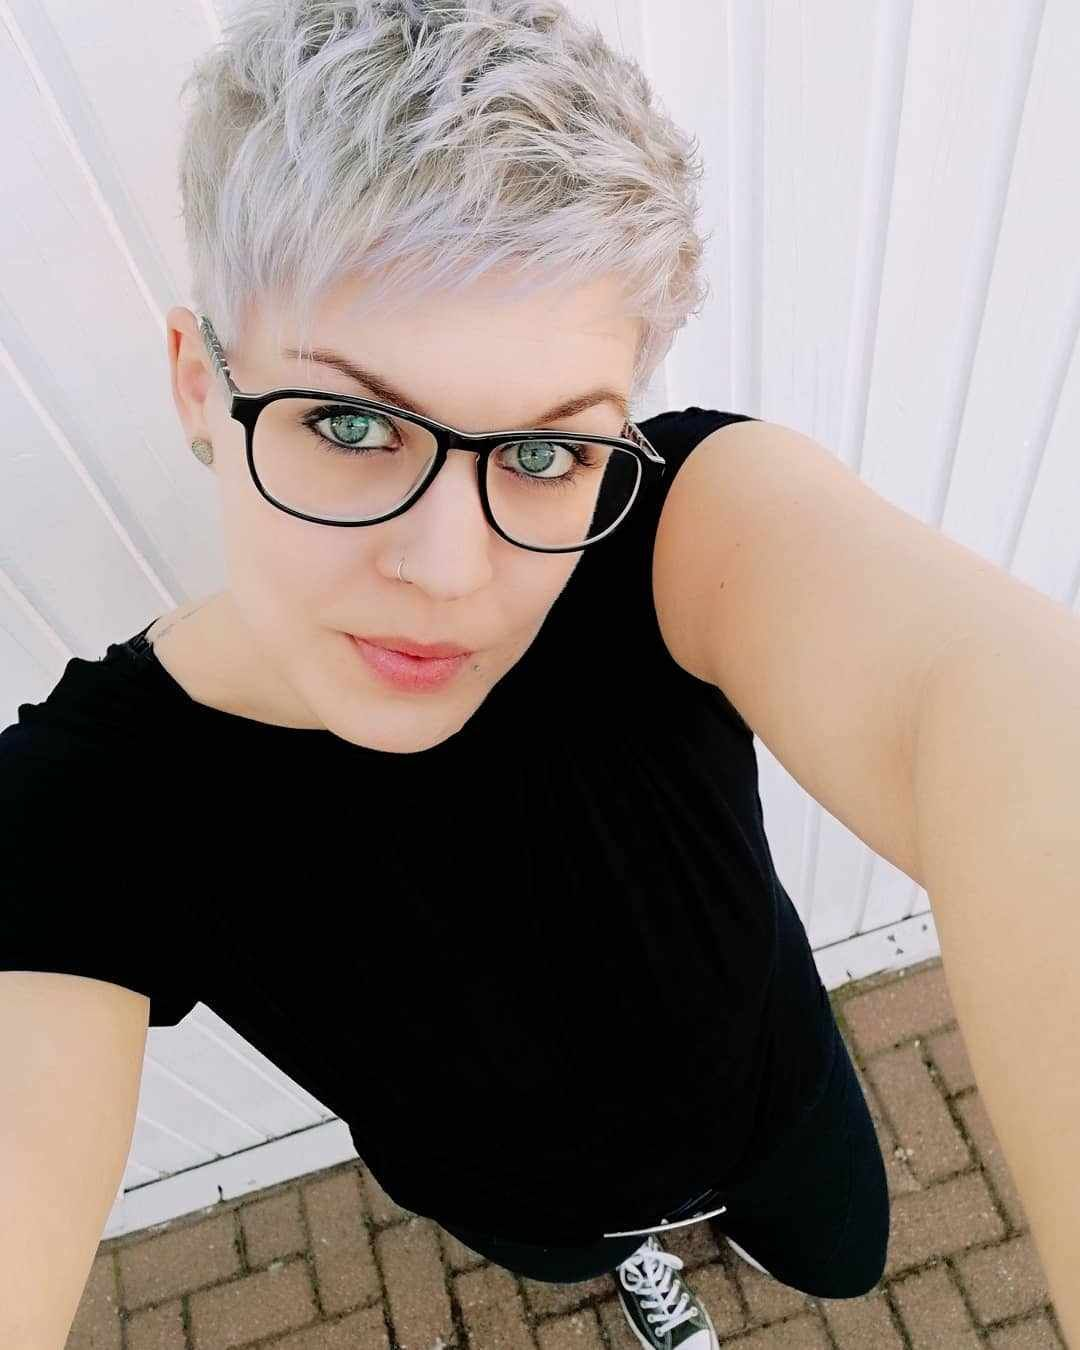 60 Favorite Short Hairstyles For Special Occasions Bobhair Hair Pixie Pixiehaircut Pixiehairstyl Short Thin Hair Short Hair Styles Long Face Hairstyles